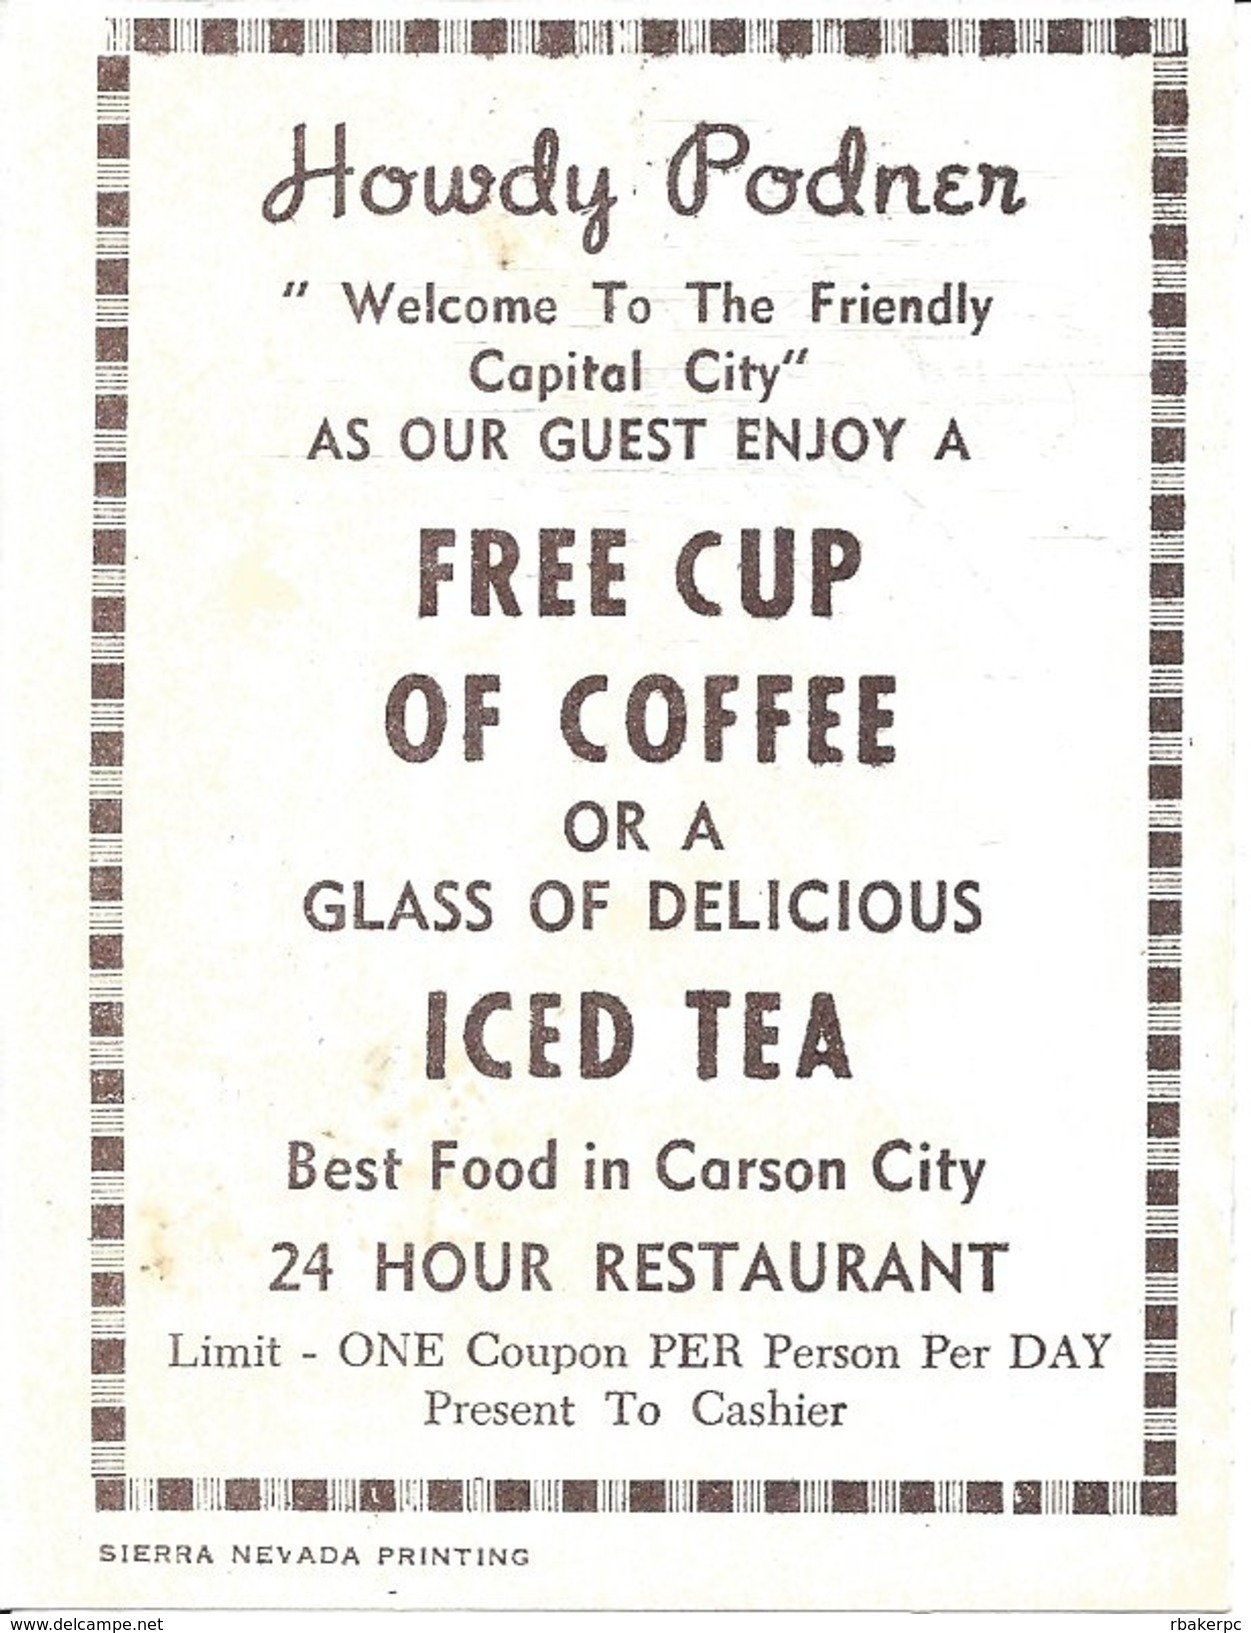 Carson City, NV USA - Coupon For Free Cup Of Coffee Or Glass Of Iced Tea - Advertising